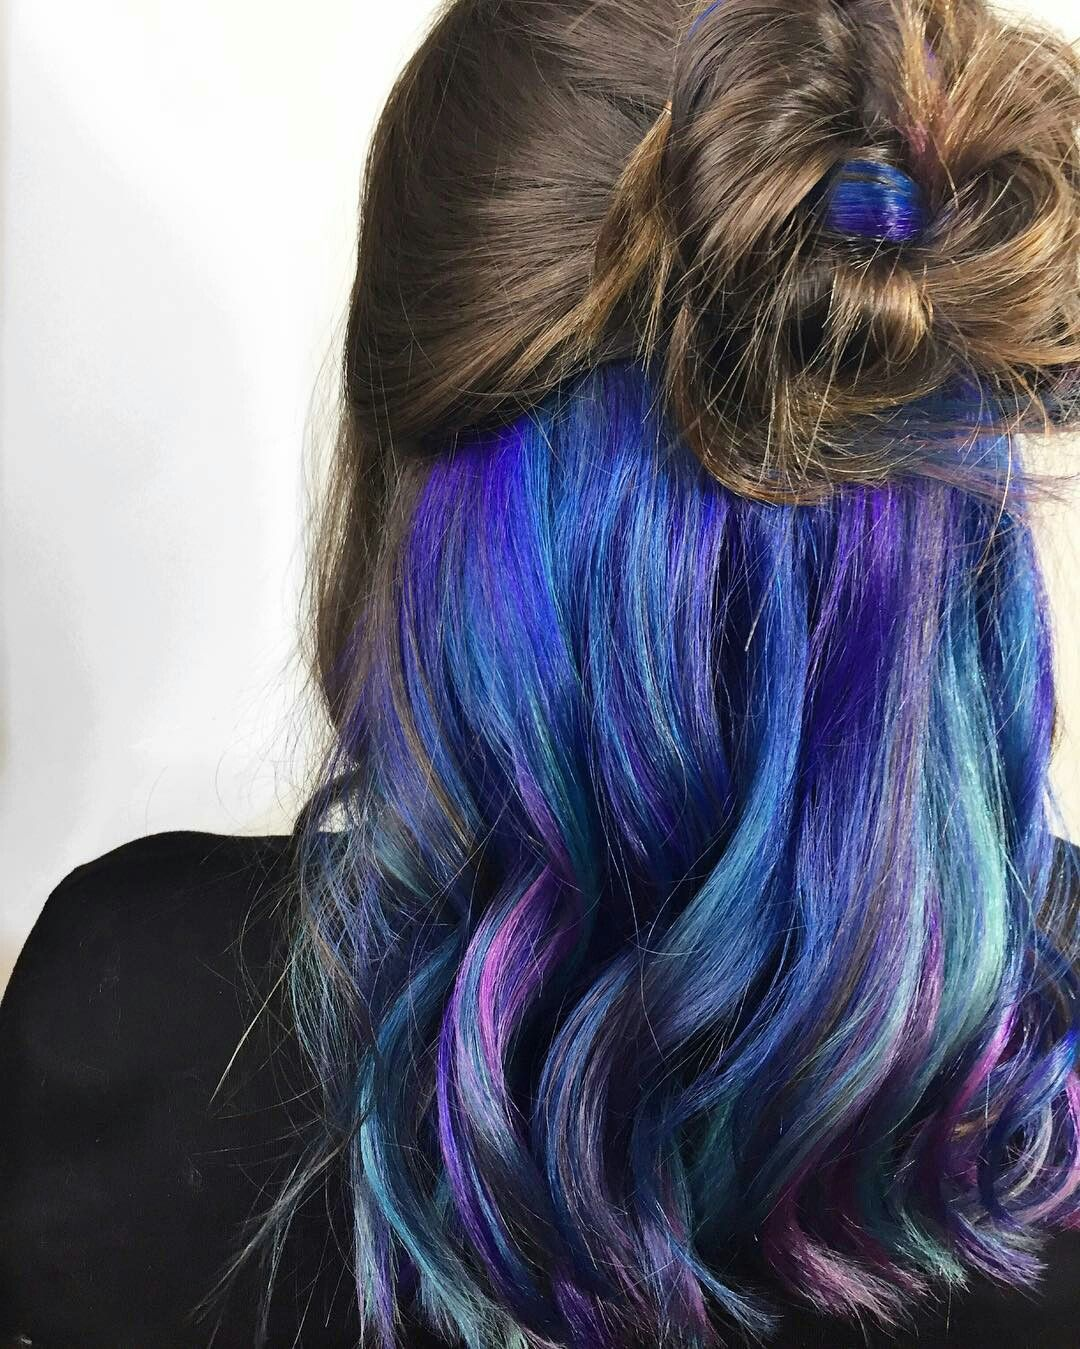 Pin By Halley Paluch On Hair Pinterest Hair Coloring Hair Style